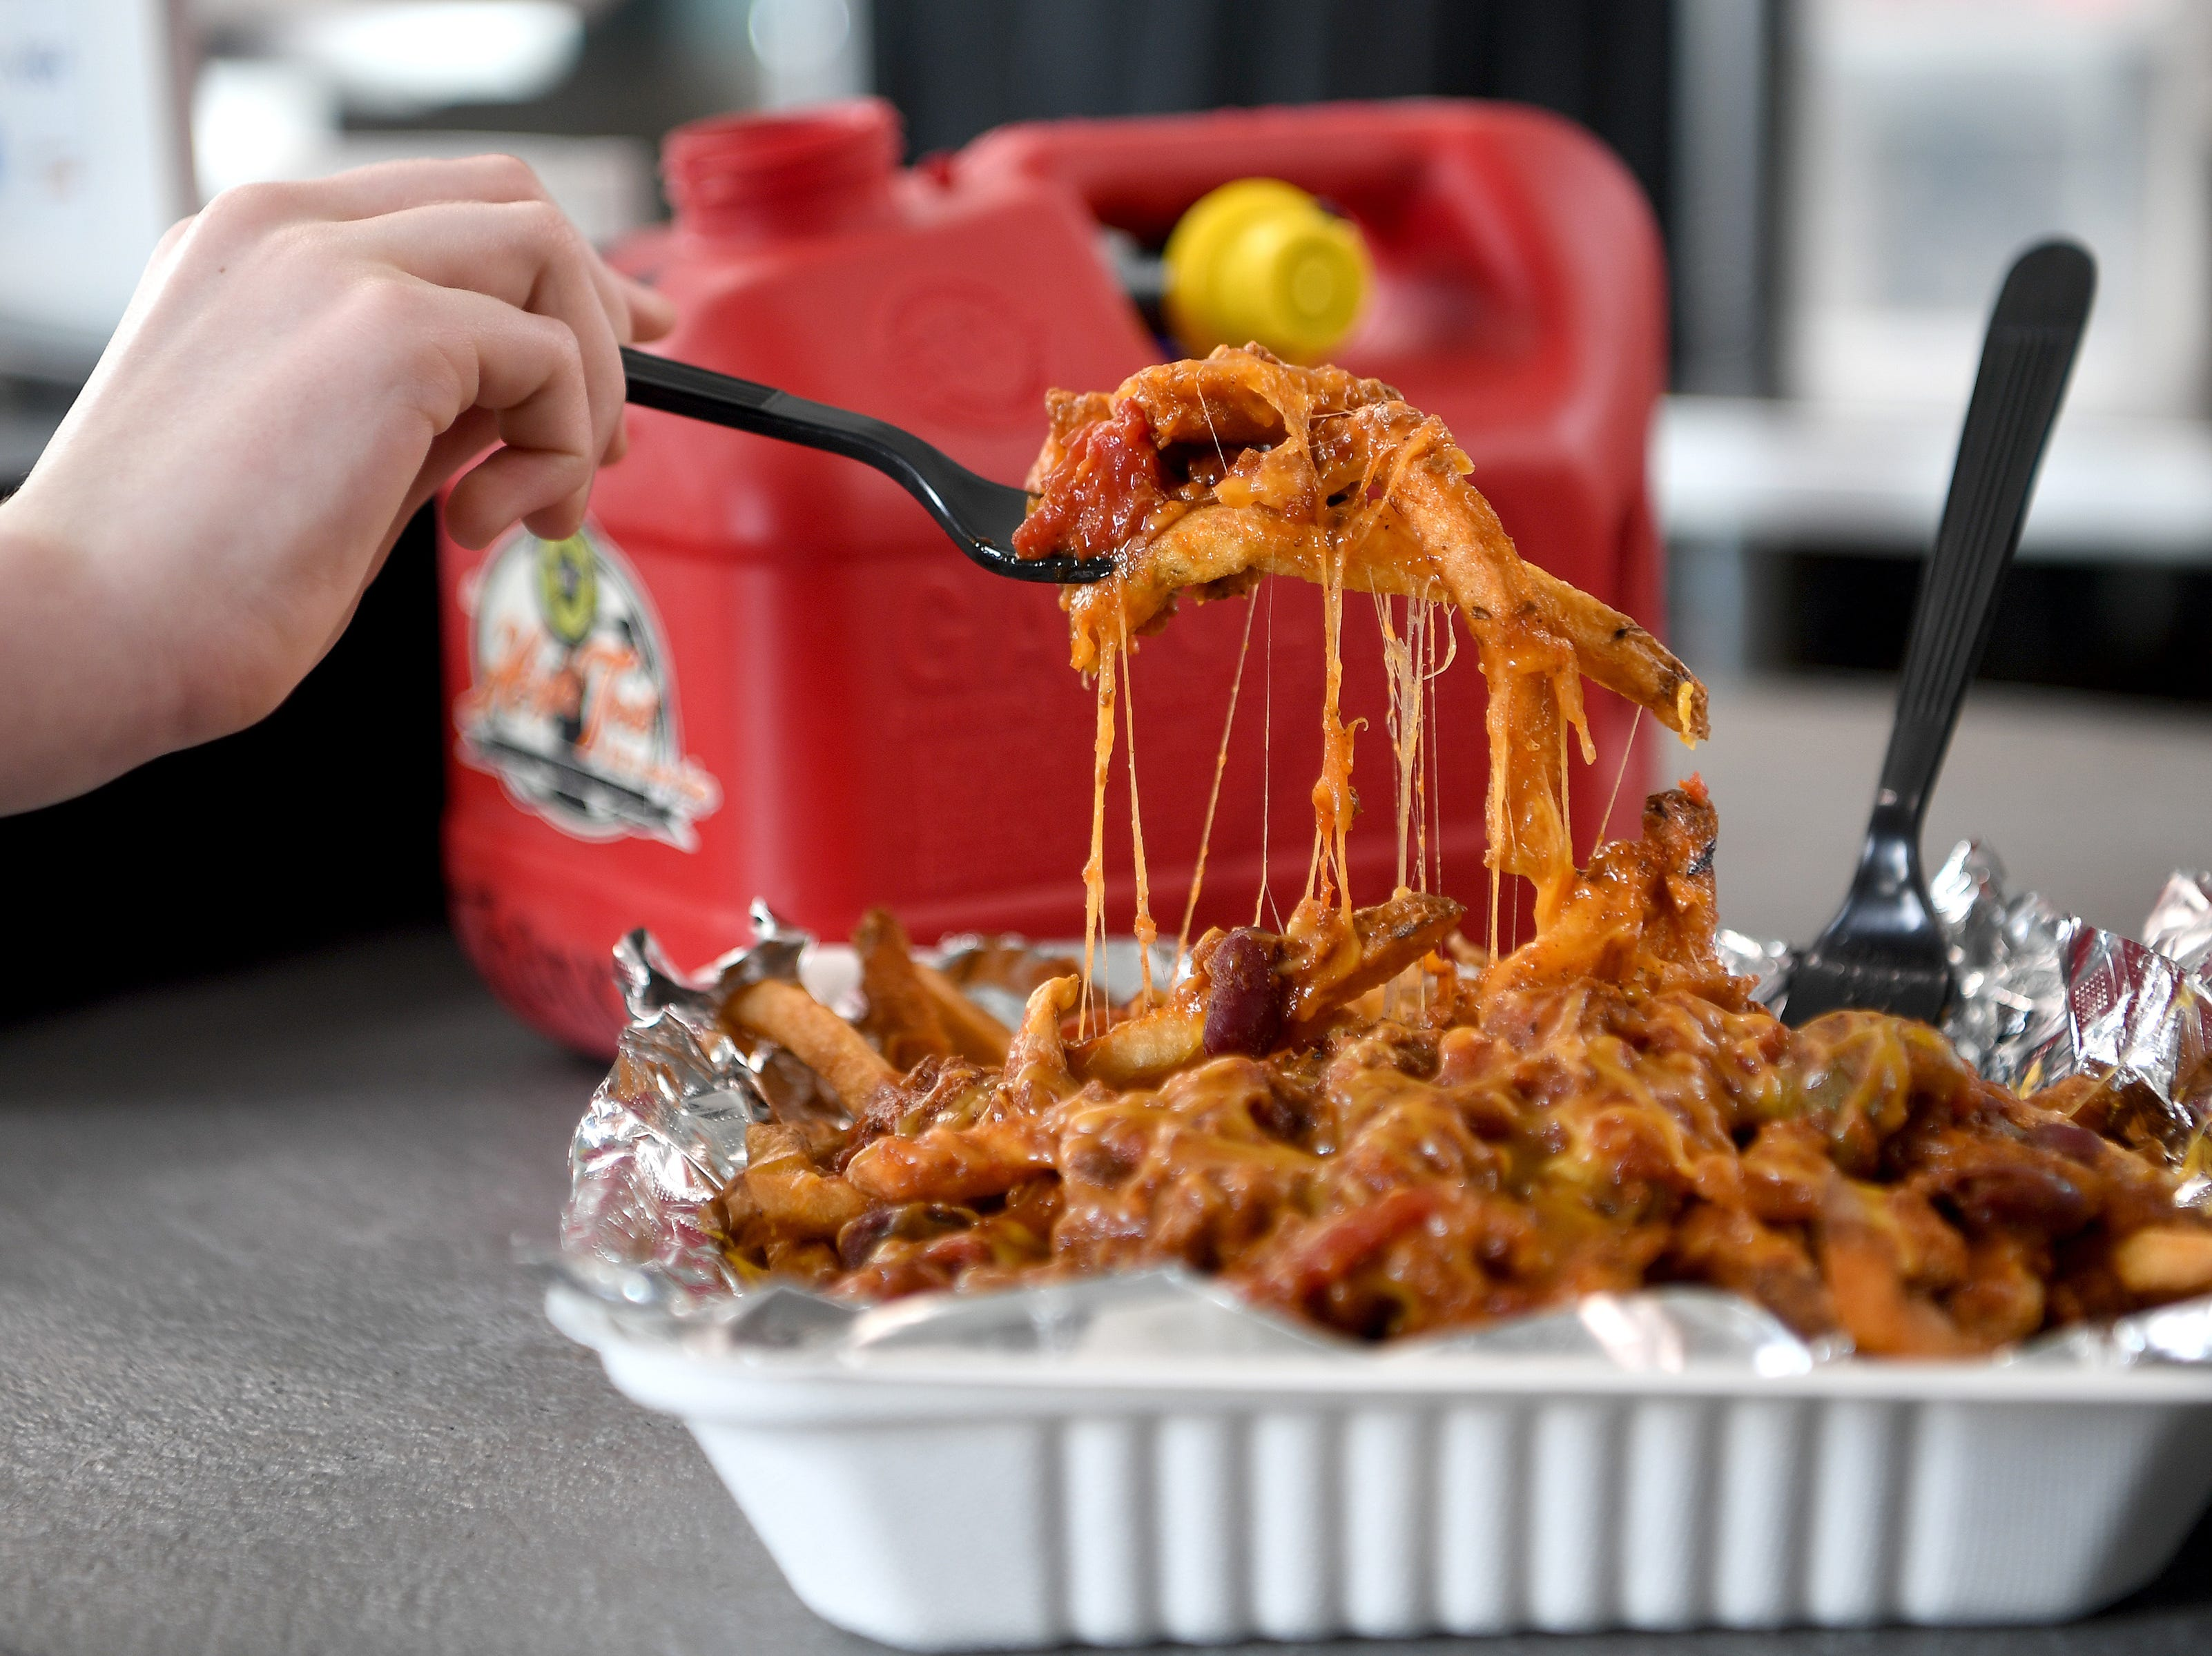 The chili cheese fries at High Test Deli and Sweet Shop on the South Slope are smothered with toppings and feed at least two people.